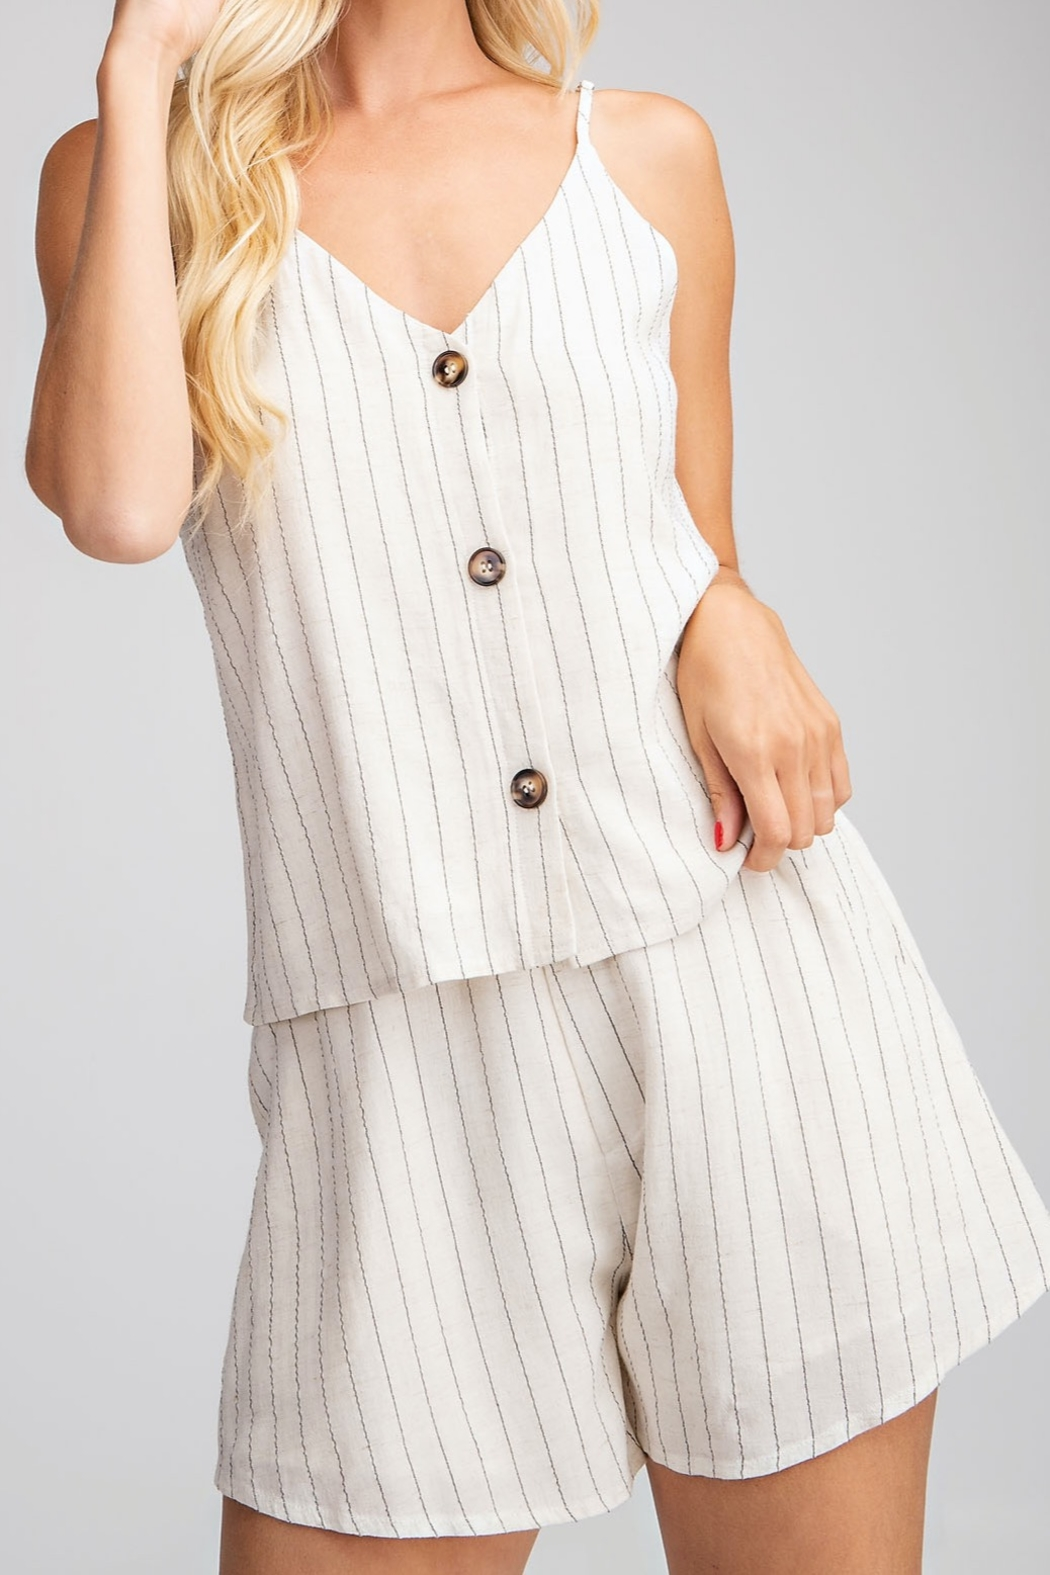 Glam Button Down tank top - Main Image